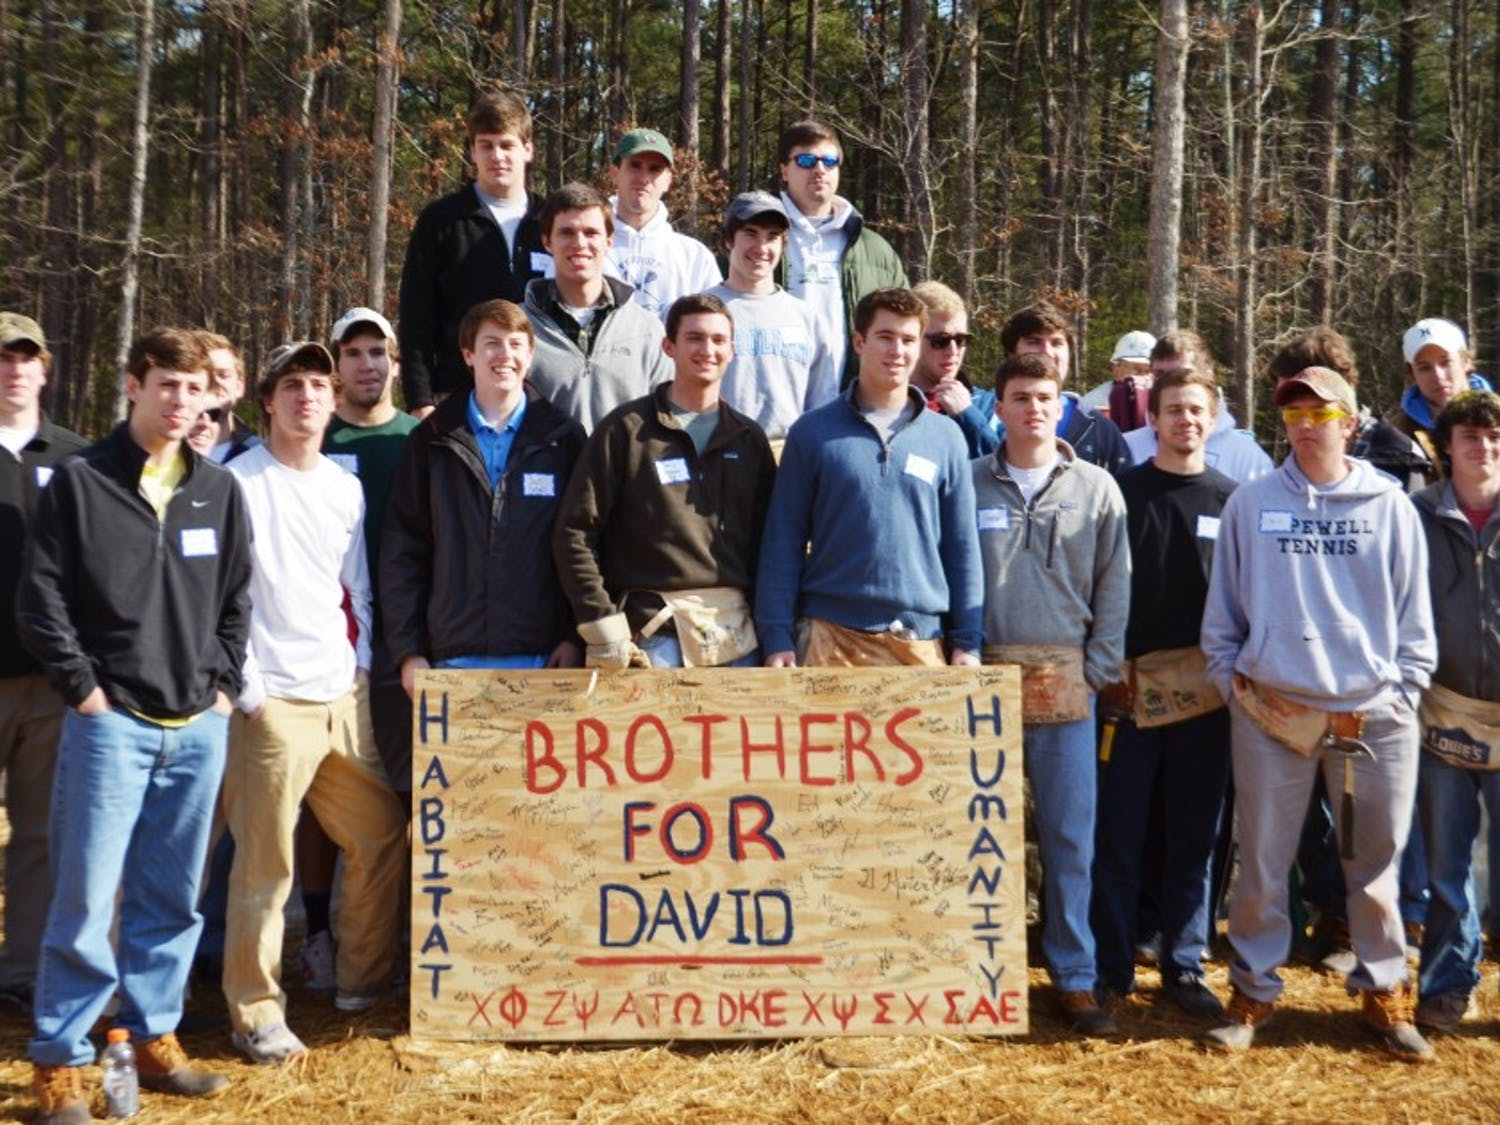 Brothers for David, a partnership of several UNC fraternities, work together with Habitat for Humanity to build a house in honor of David Shannon. The house will home a lower-income CH family whose parents work as custodians on UNC